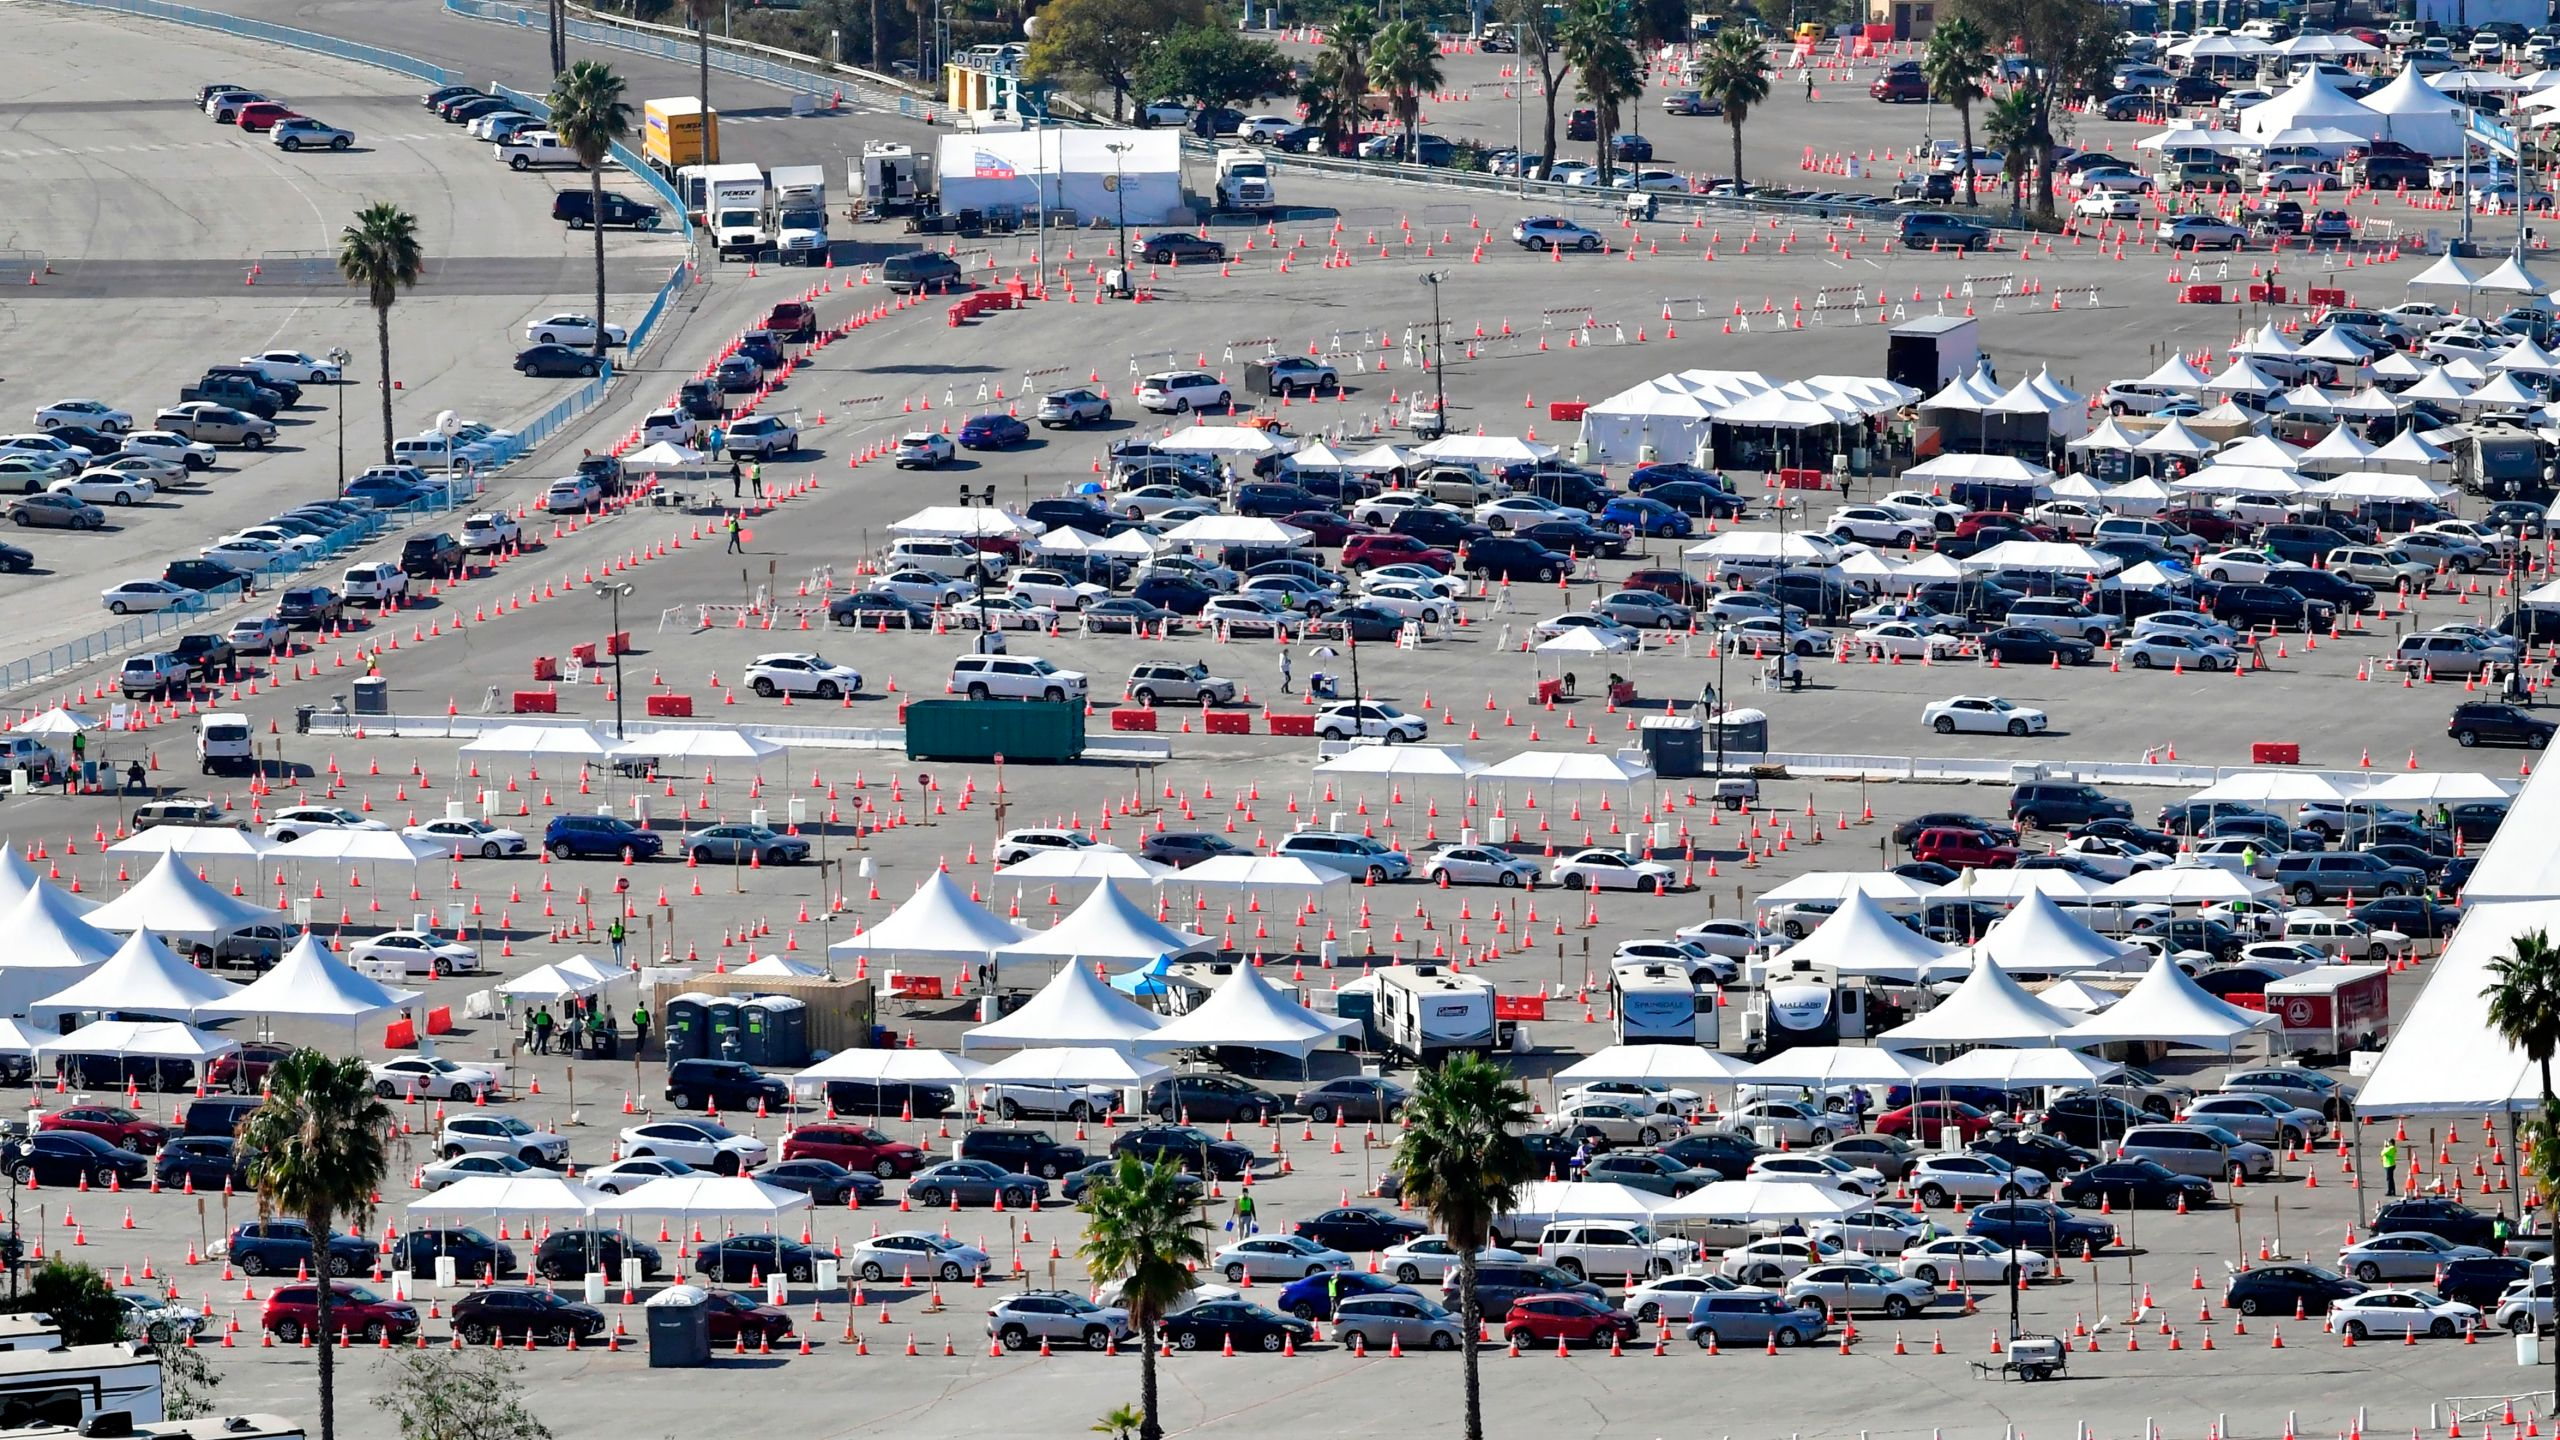 People in vehicles wait in line for their COVID-19 vaccinations in the parking lot at Dodger Stadium in Los Angeles, California on Feb. 25, 2021. (FREDERIC J. BROWN/AFP via Getty Images)